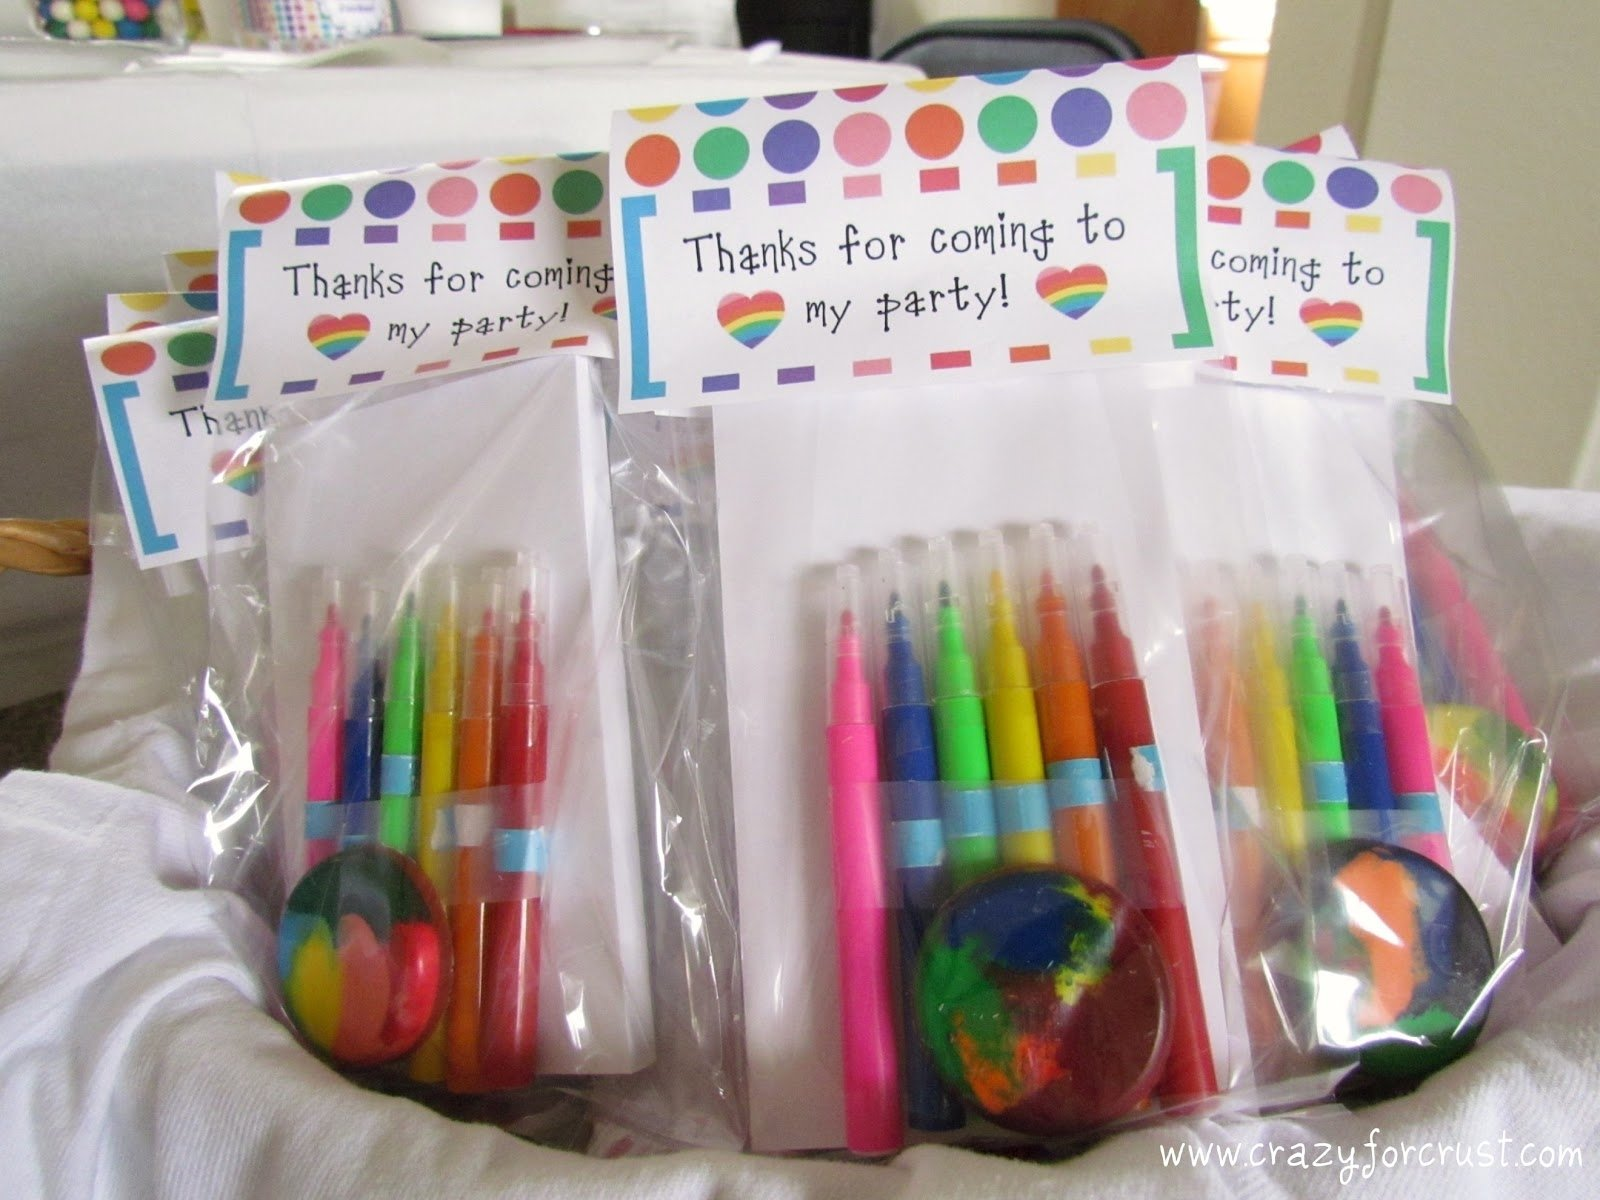 10 Amazing Goodie Bag Ideas For Birthday Party 51 items for goody bags best goodie bags birthday photos 2017 blue 2020